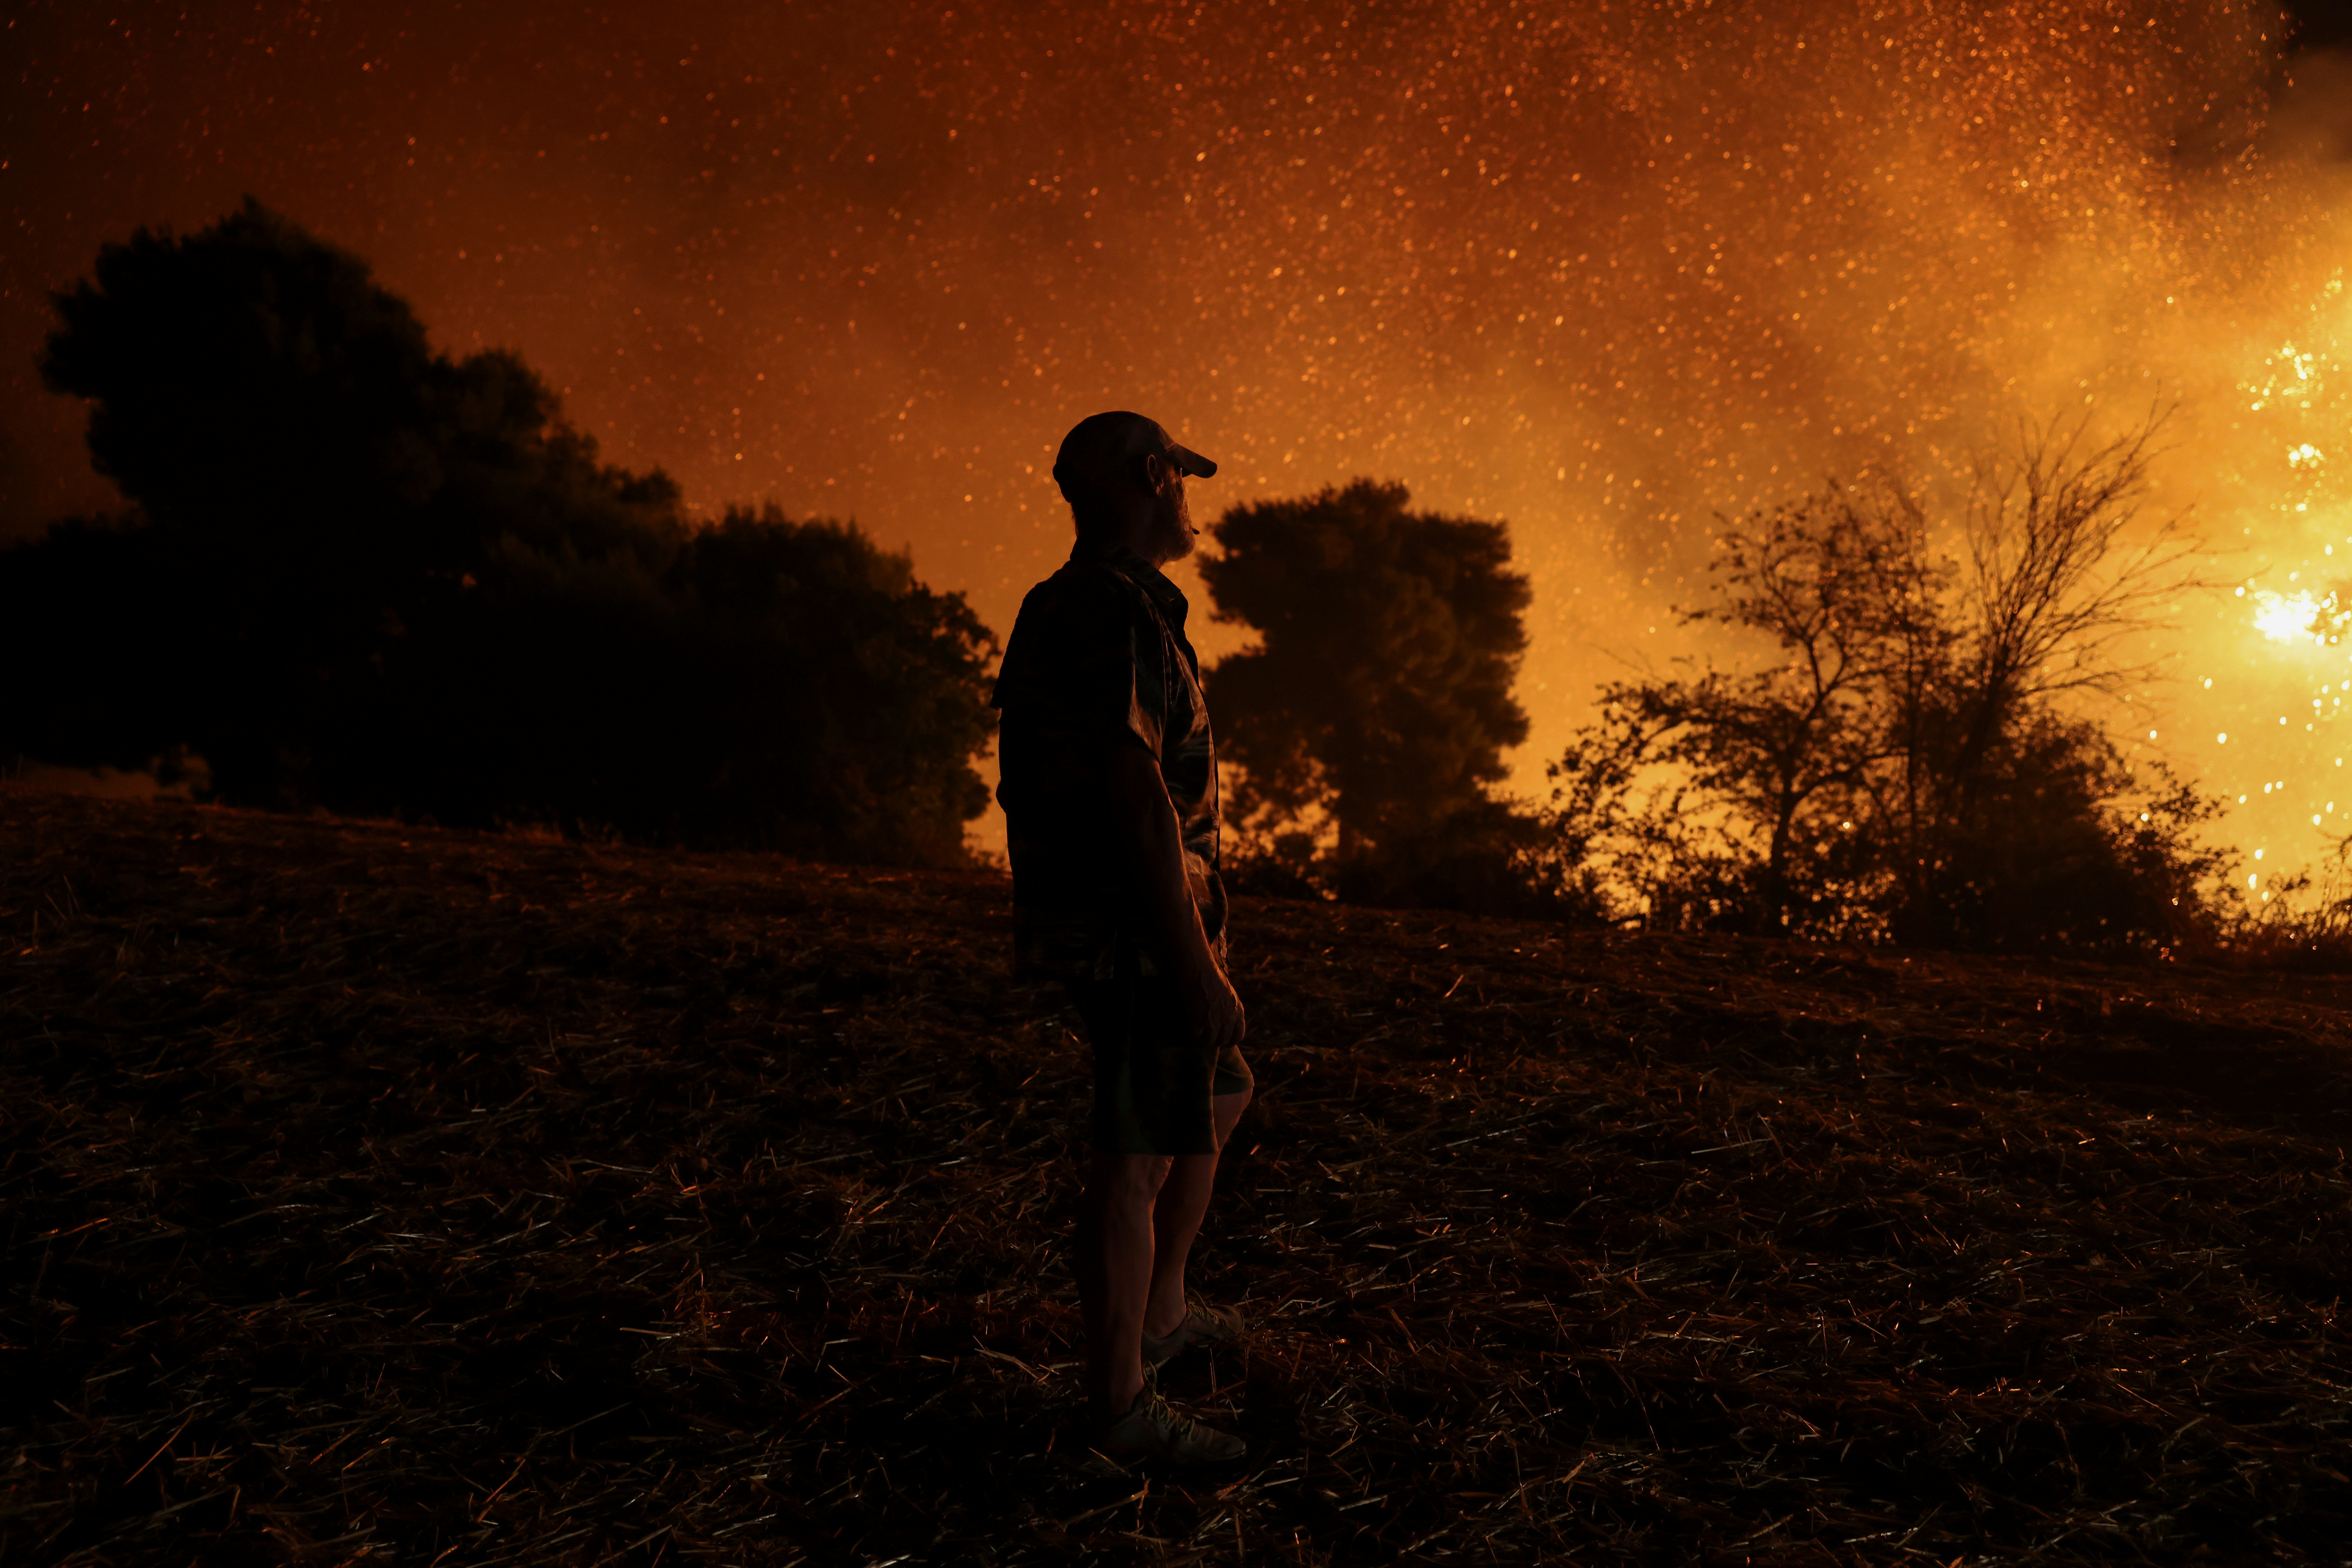 A man is silhouetted as he watches a wildfire burning in the village of Lasdikas near ancient Olympia, Greece, August 5, 2021. REUTERS/Giorgos Moutafis